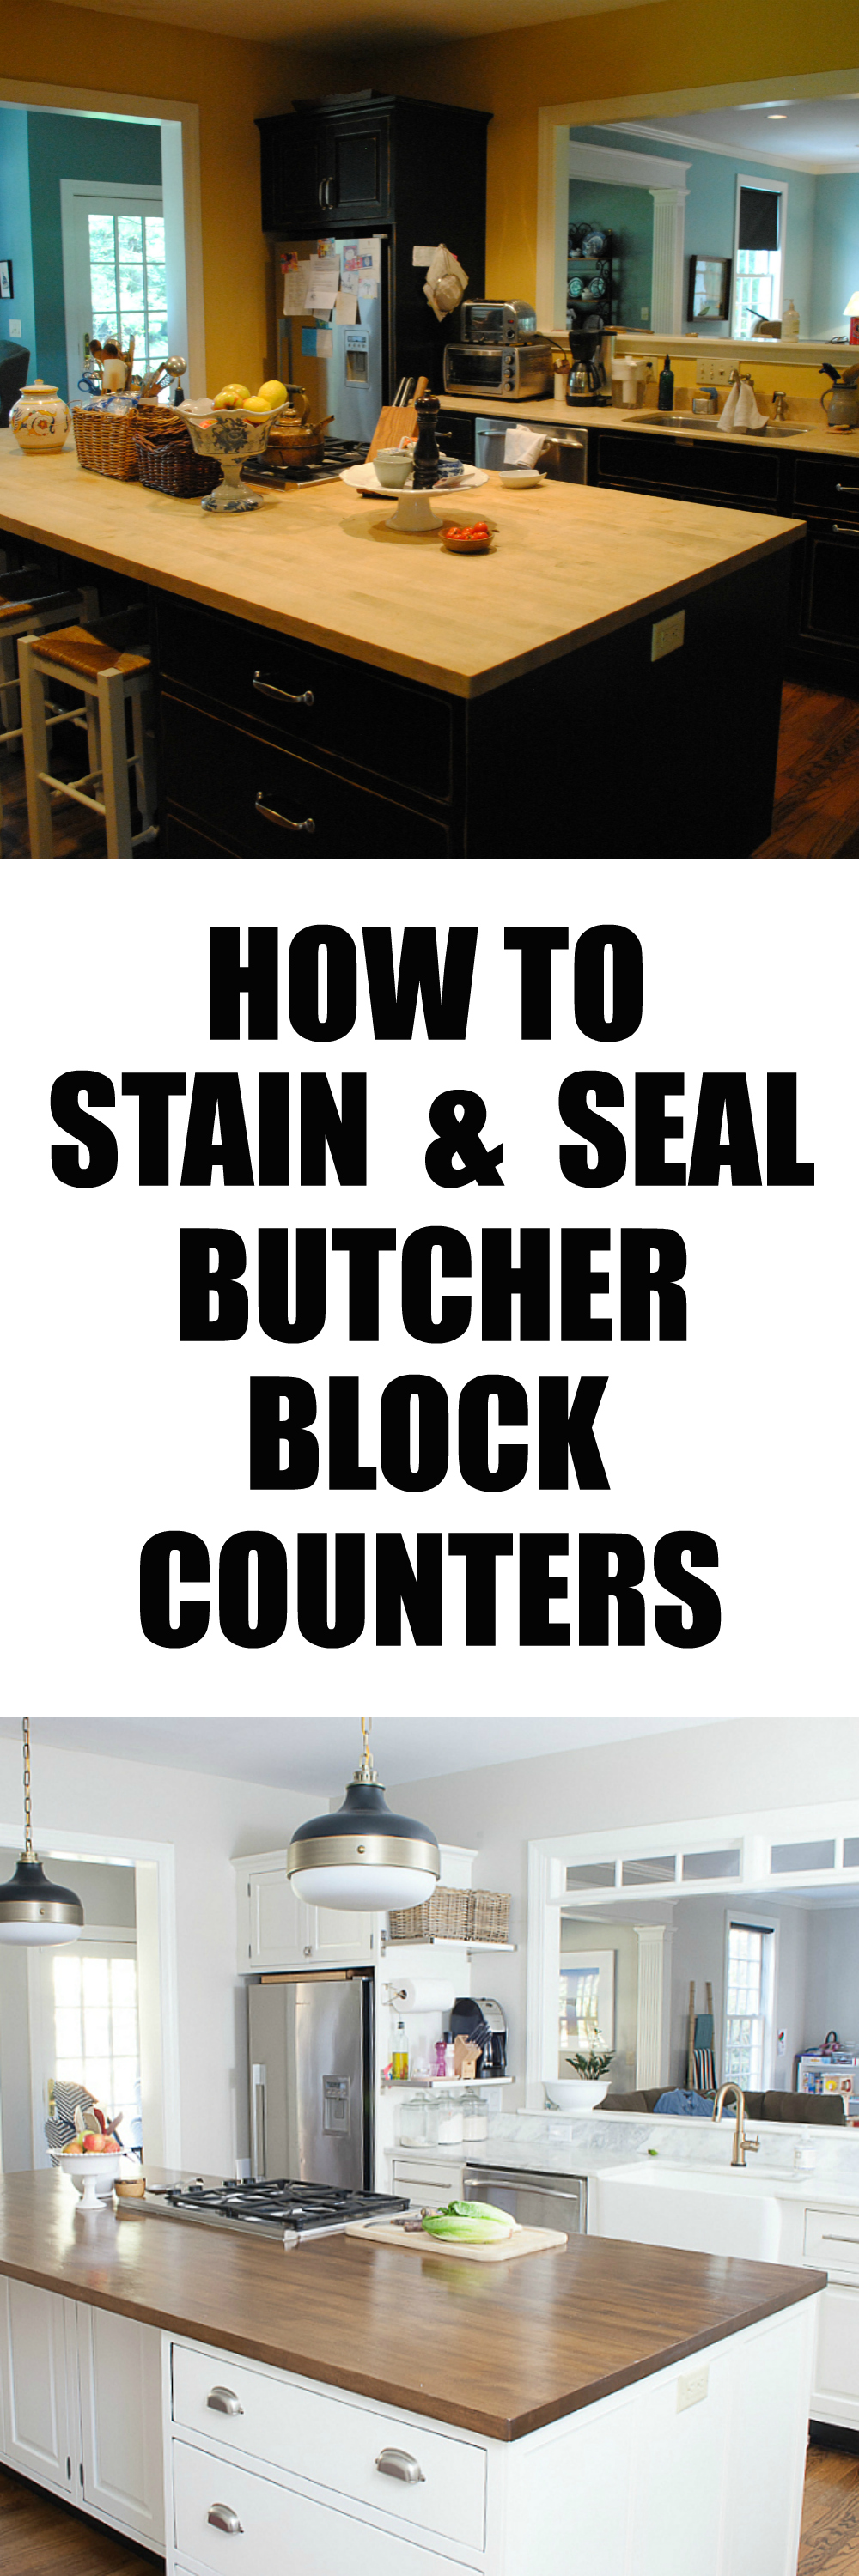 Charmant How To Stain And Seal Butcher Block Counters